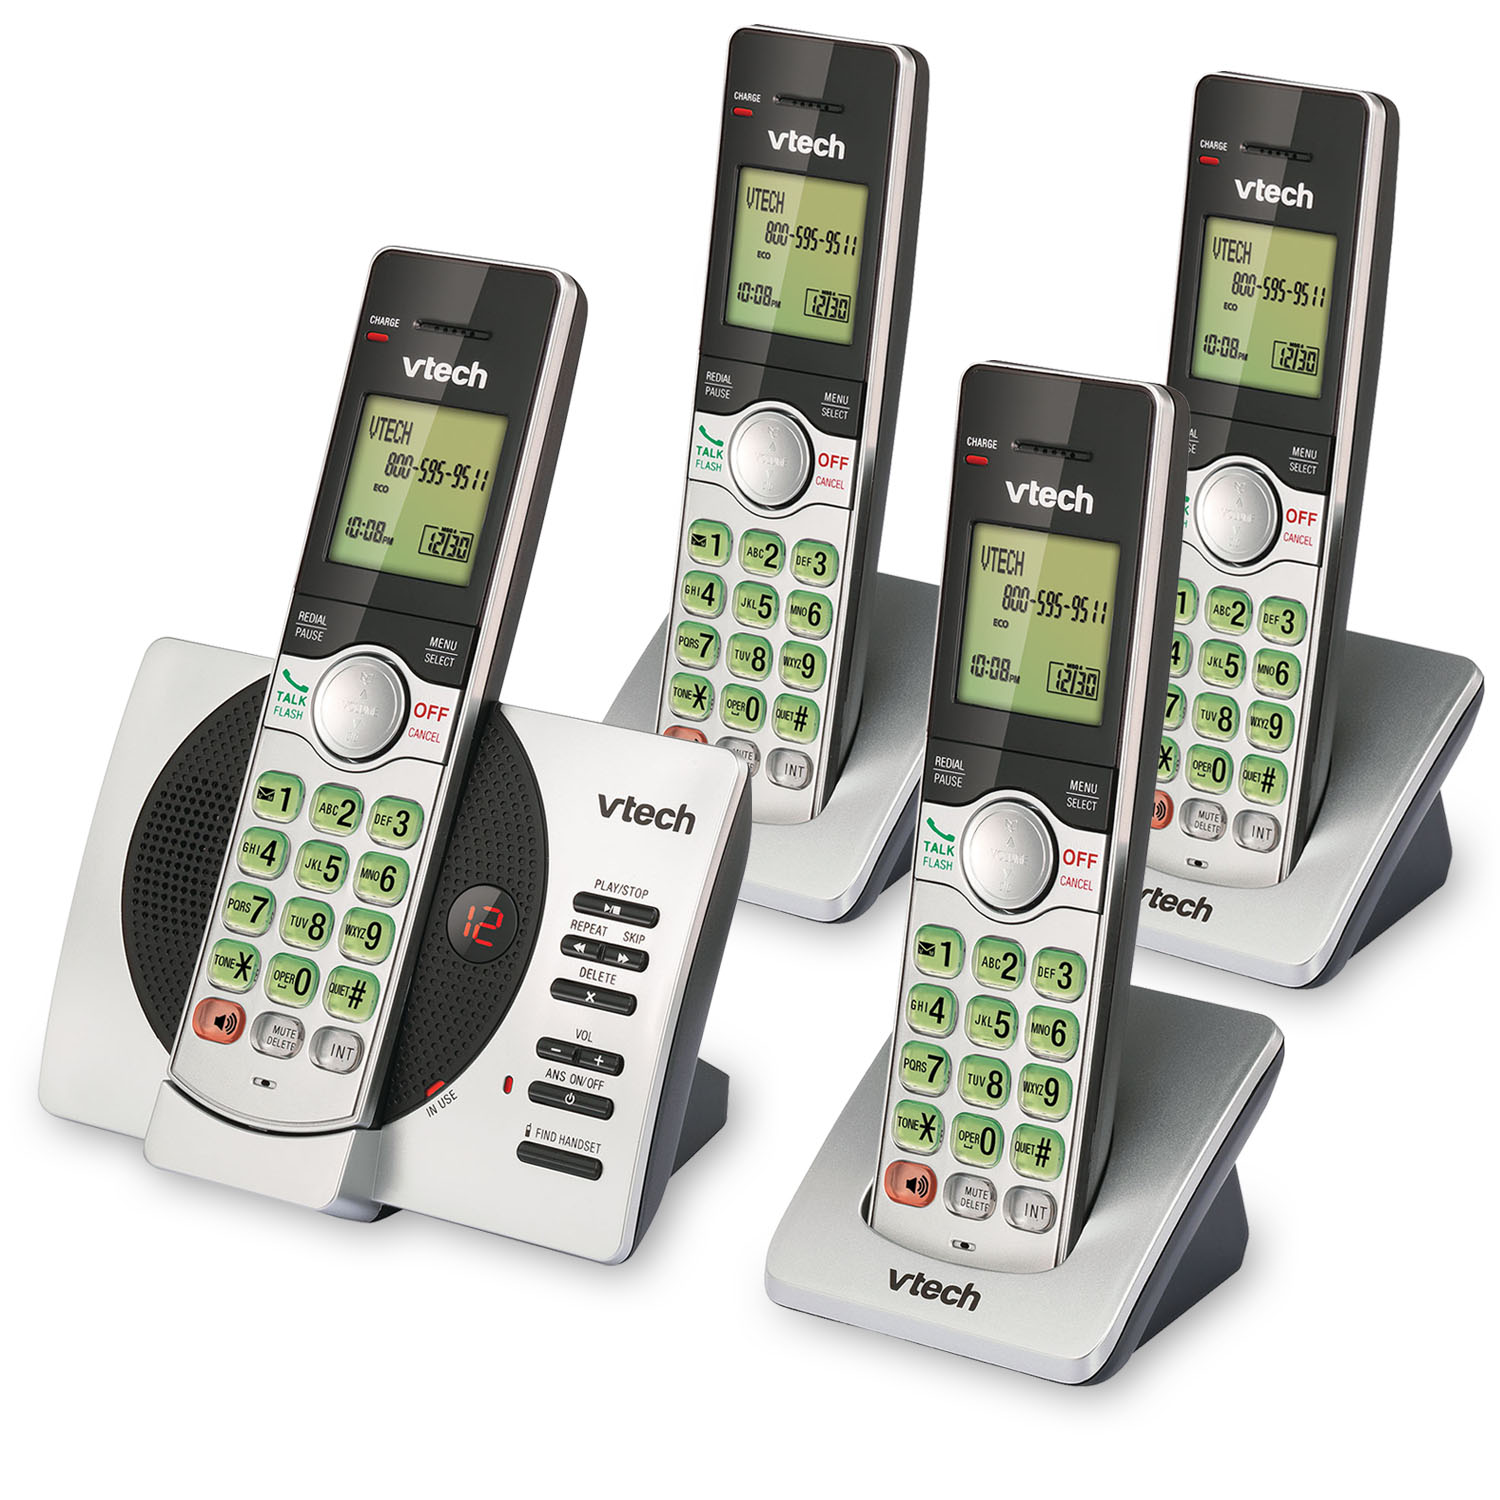 cs6929 4 vtech cordless phones. Black Bedroom Furniture Sets. Home Design Ideas